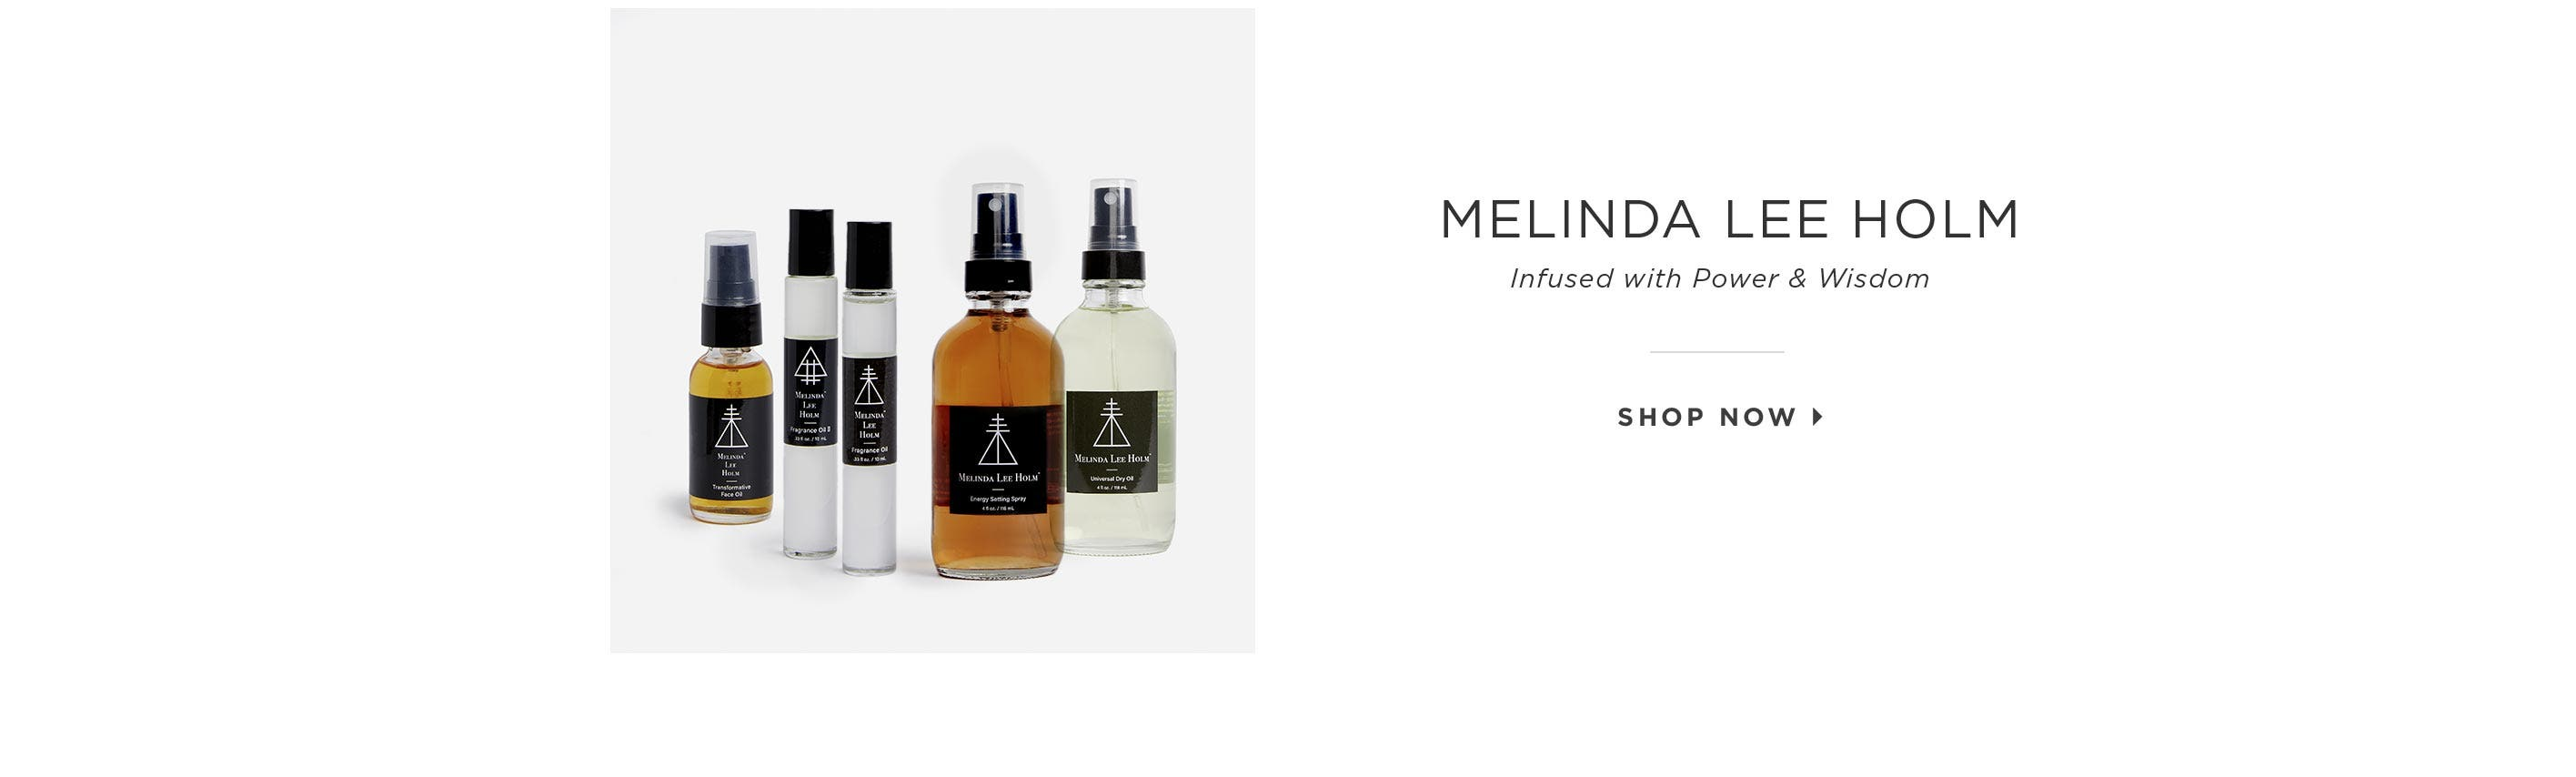 Melinda Lee Holm – Infused with Power & Wisdom. Shop Now.